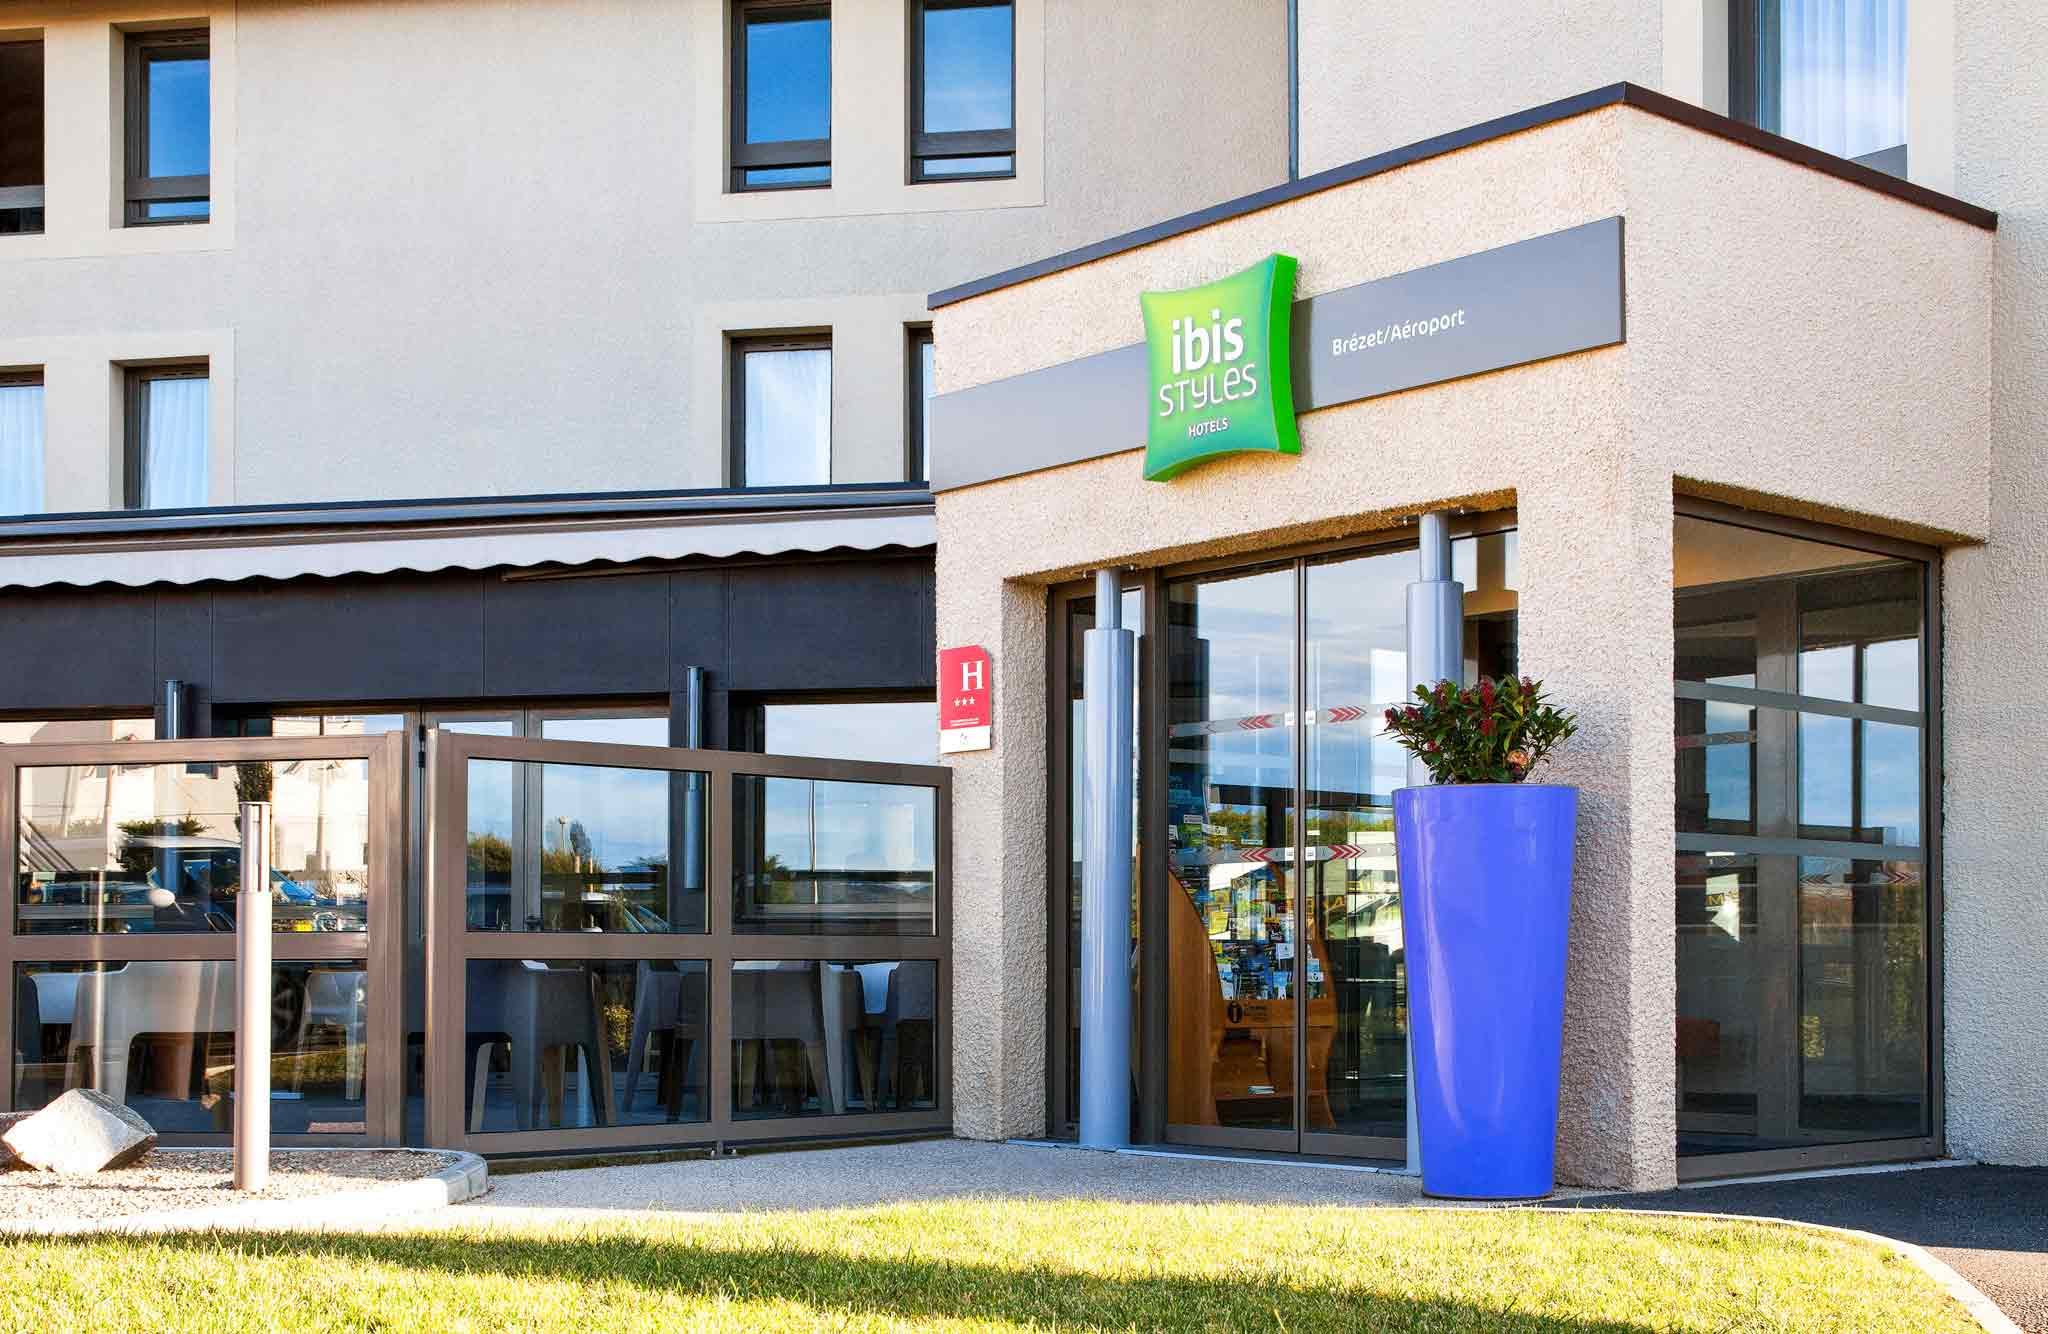 Hotel in CLERMONT FERRAND - ibis Styles Clermont-Ferrand Le Brézet ...